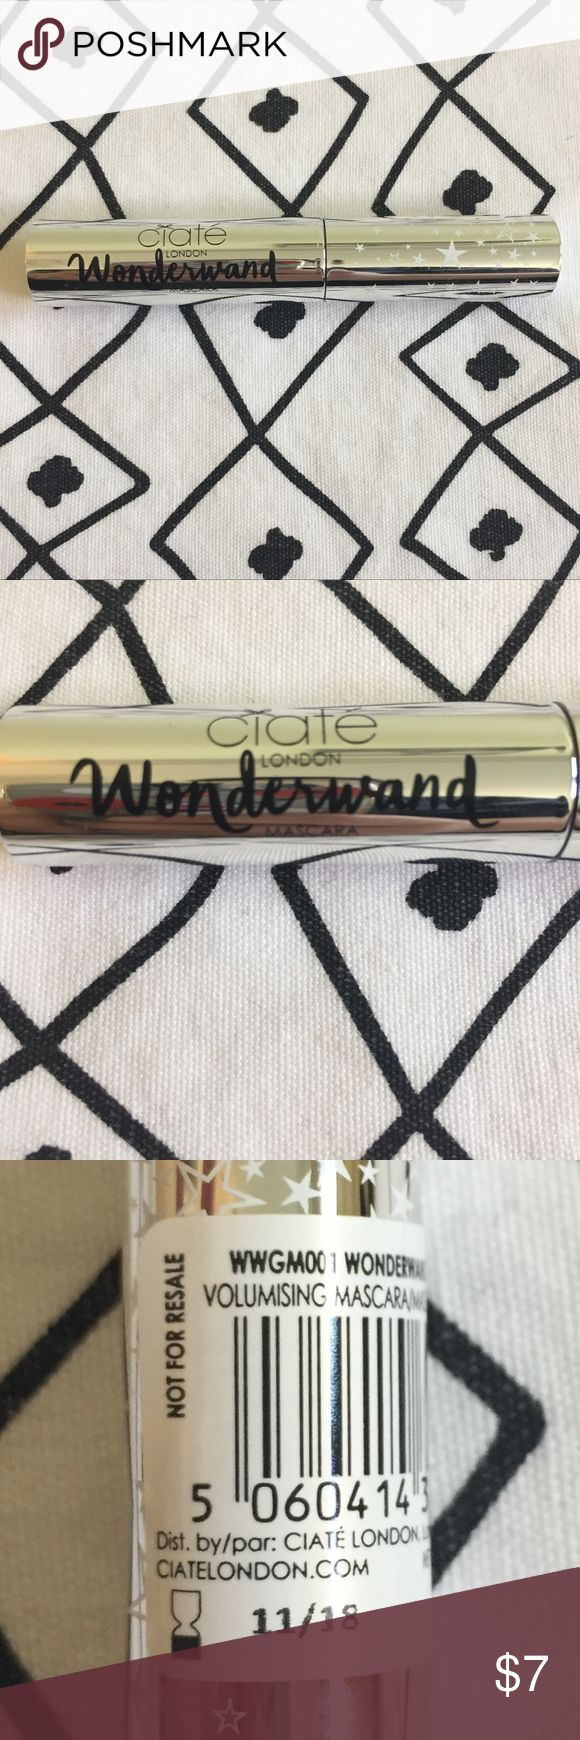 Ciate London Wonderwand Mascara New volumizing mascara Ciate Makeup Mascara